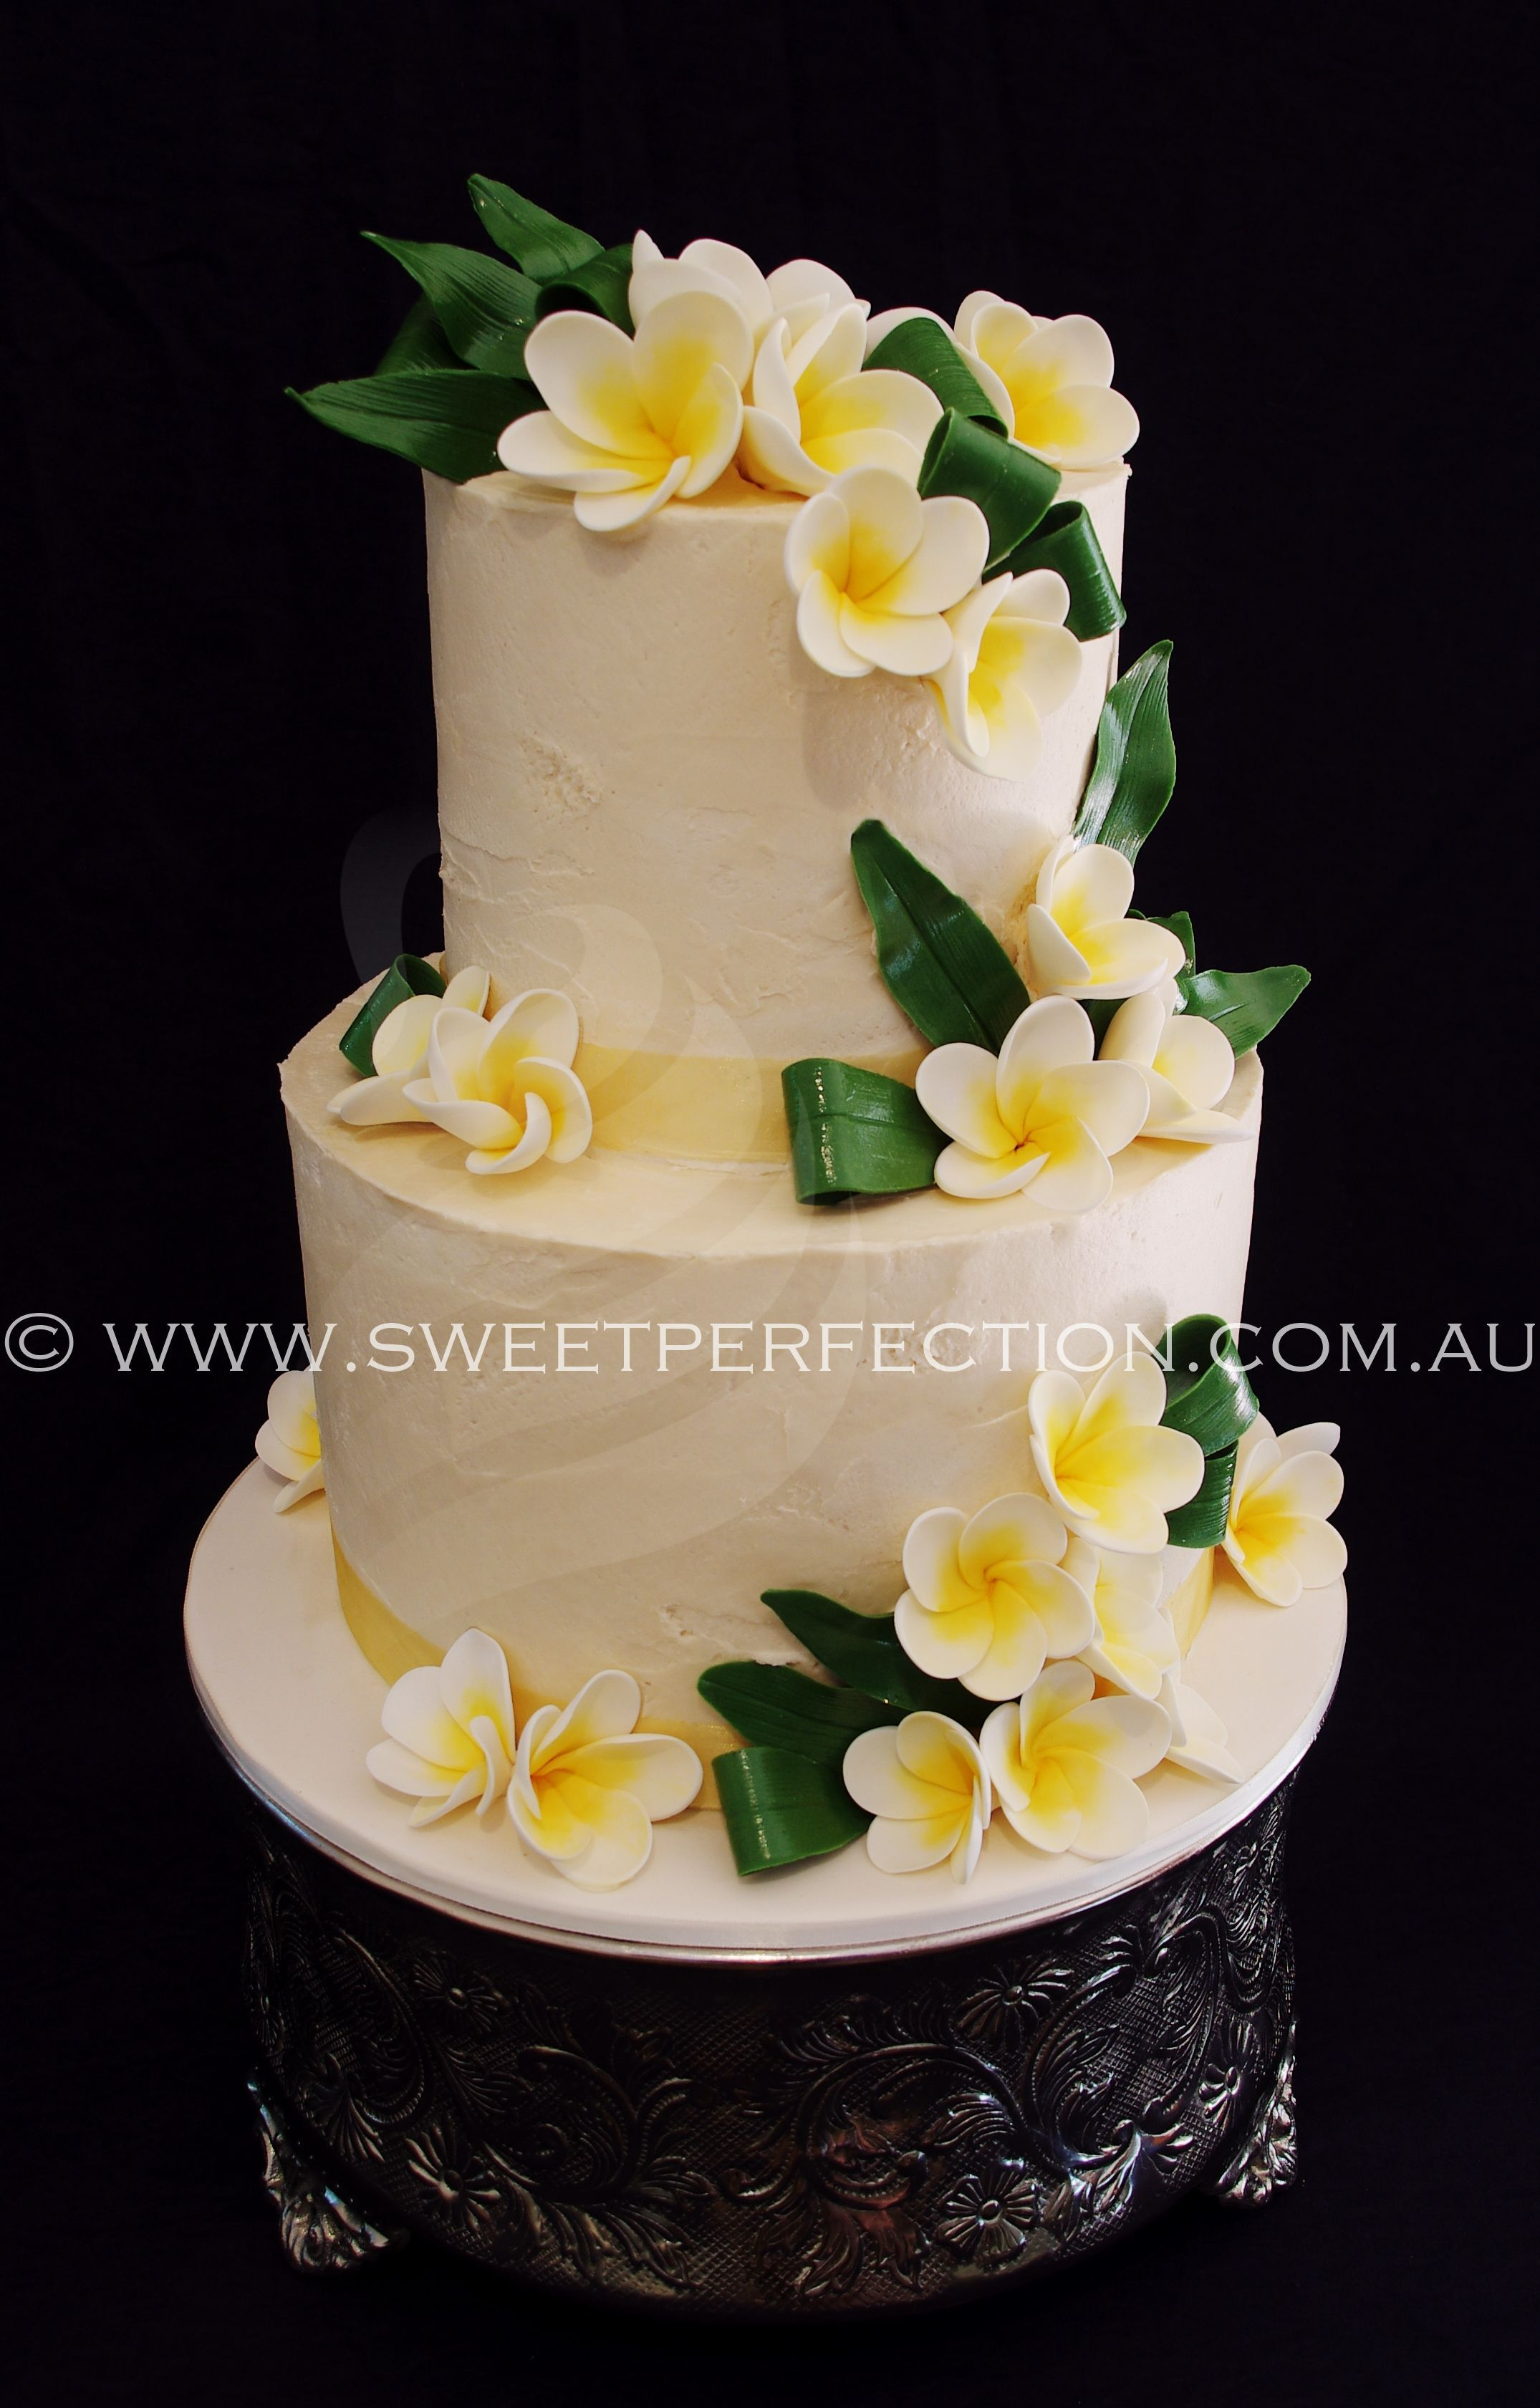 Sugar Frangipanis Plumerias And Greenery Accent This Lovely Buttercream Wedding Cake By Sweet Perfection